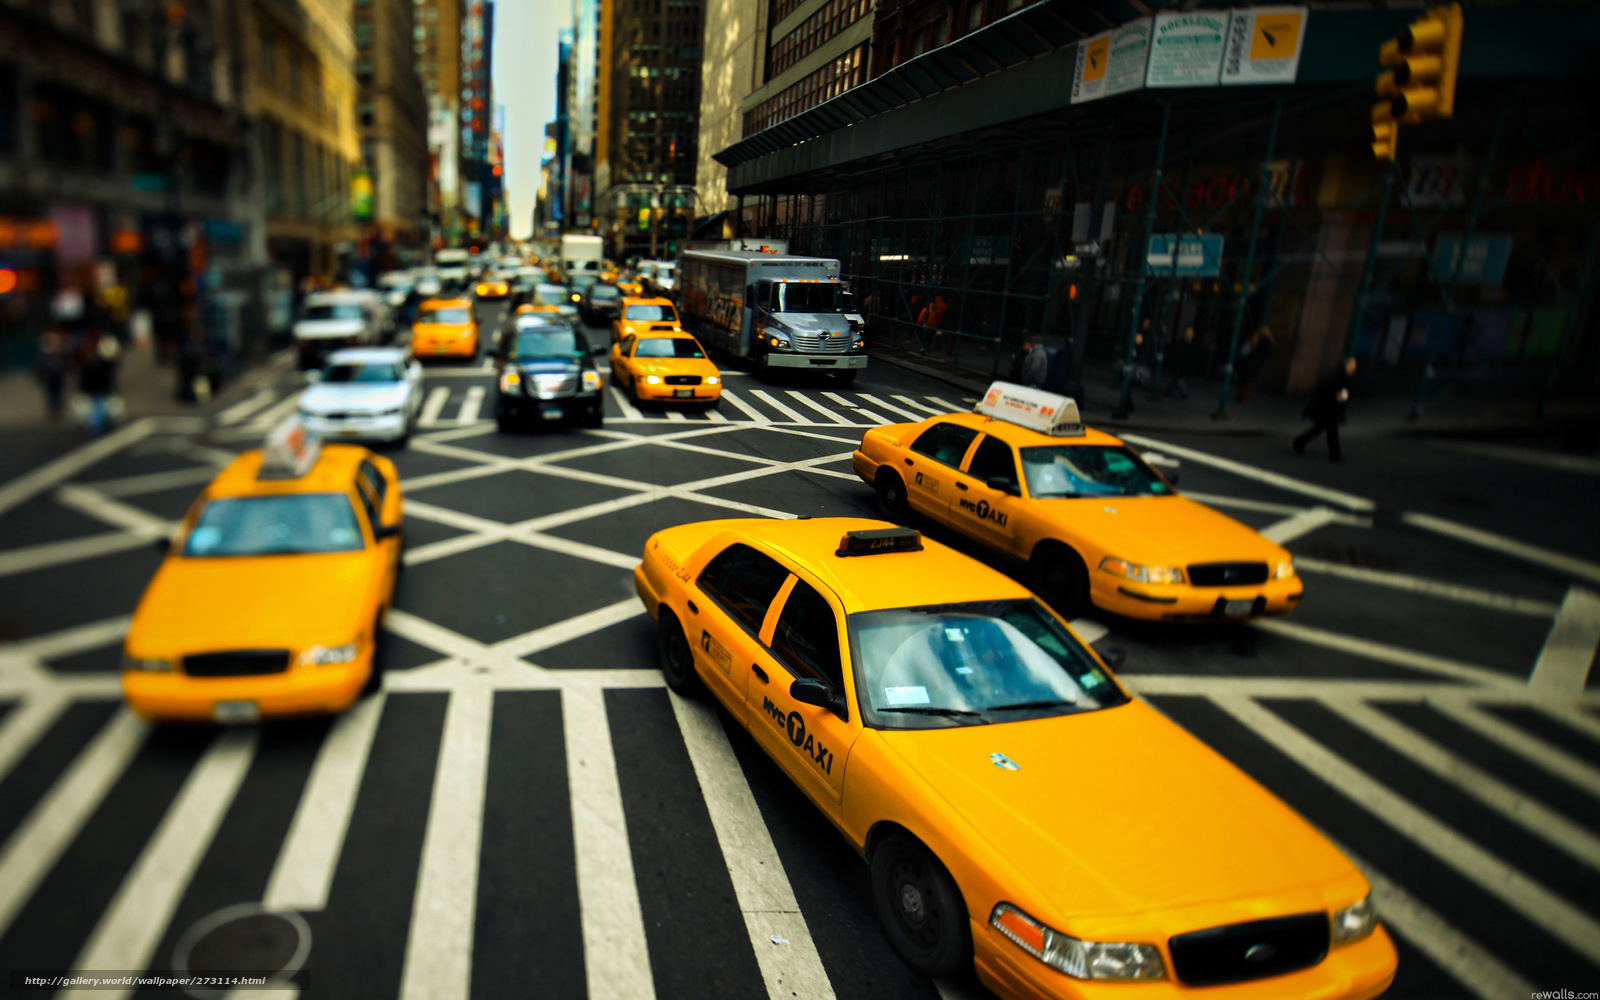 Tlcharger Fond D Ecran New York Taxi Route Fonds D Ecran